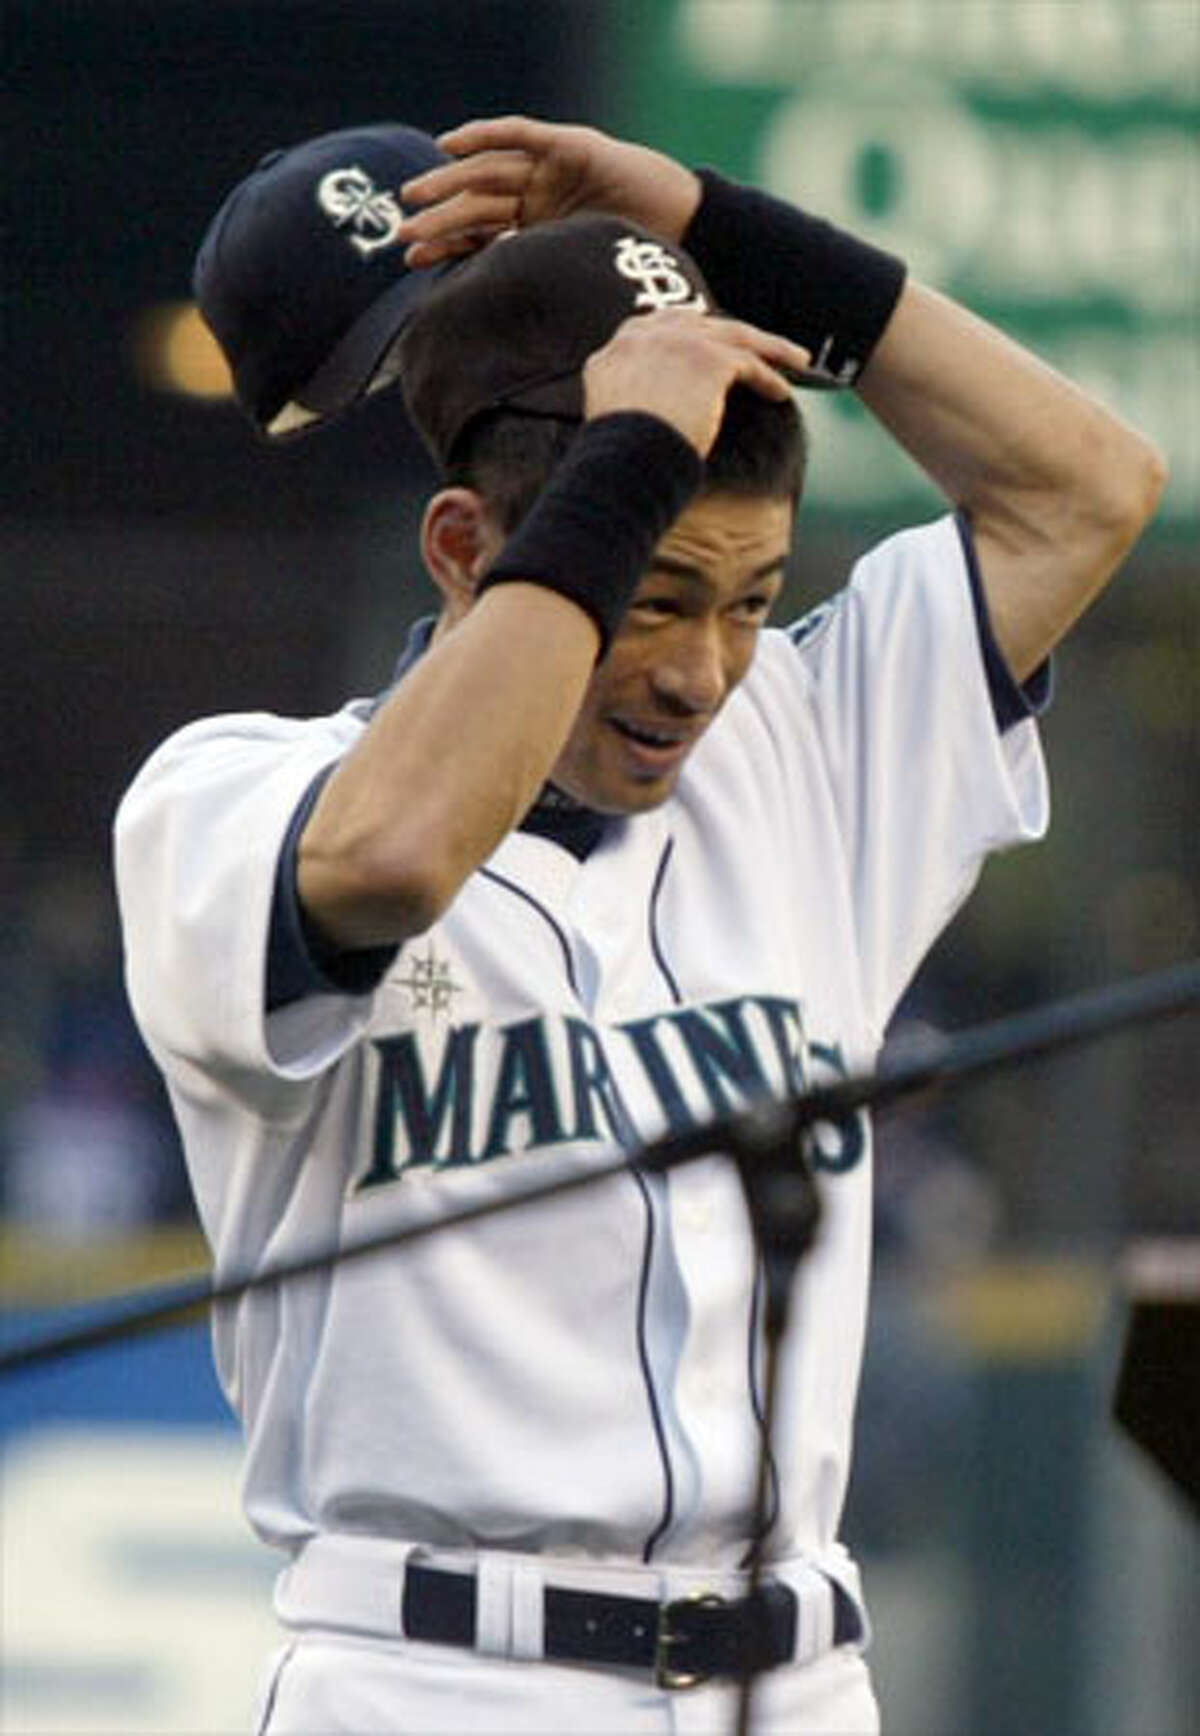 Mariners Ichiro Suzuki puts on an autographed George Sisler baseball hat during a ceremony prior to the game against the Texas Rangers.